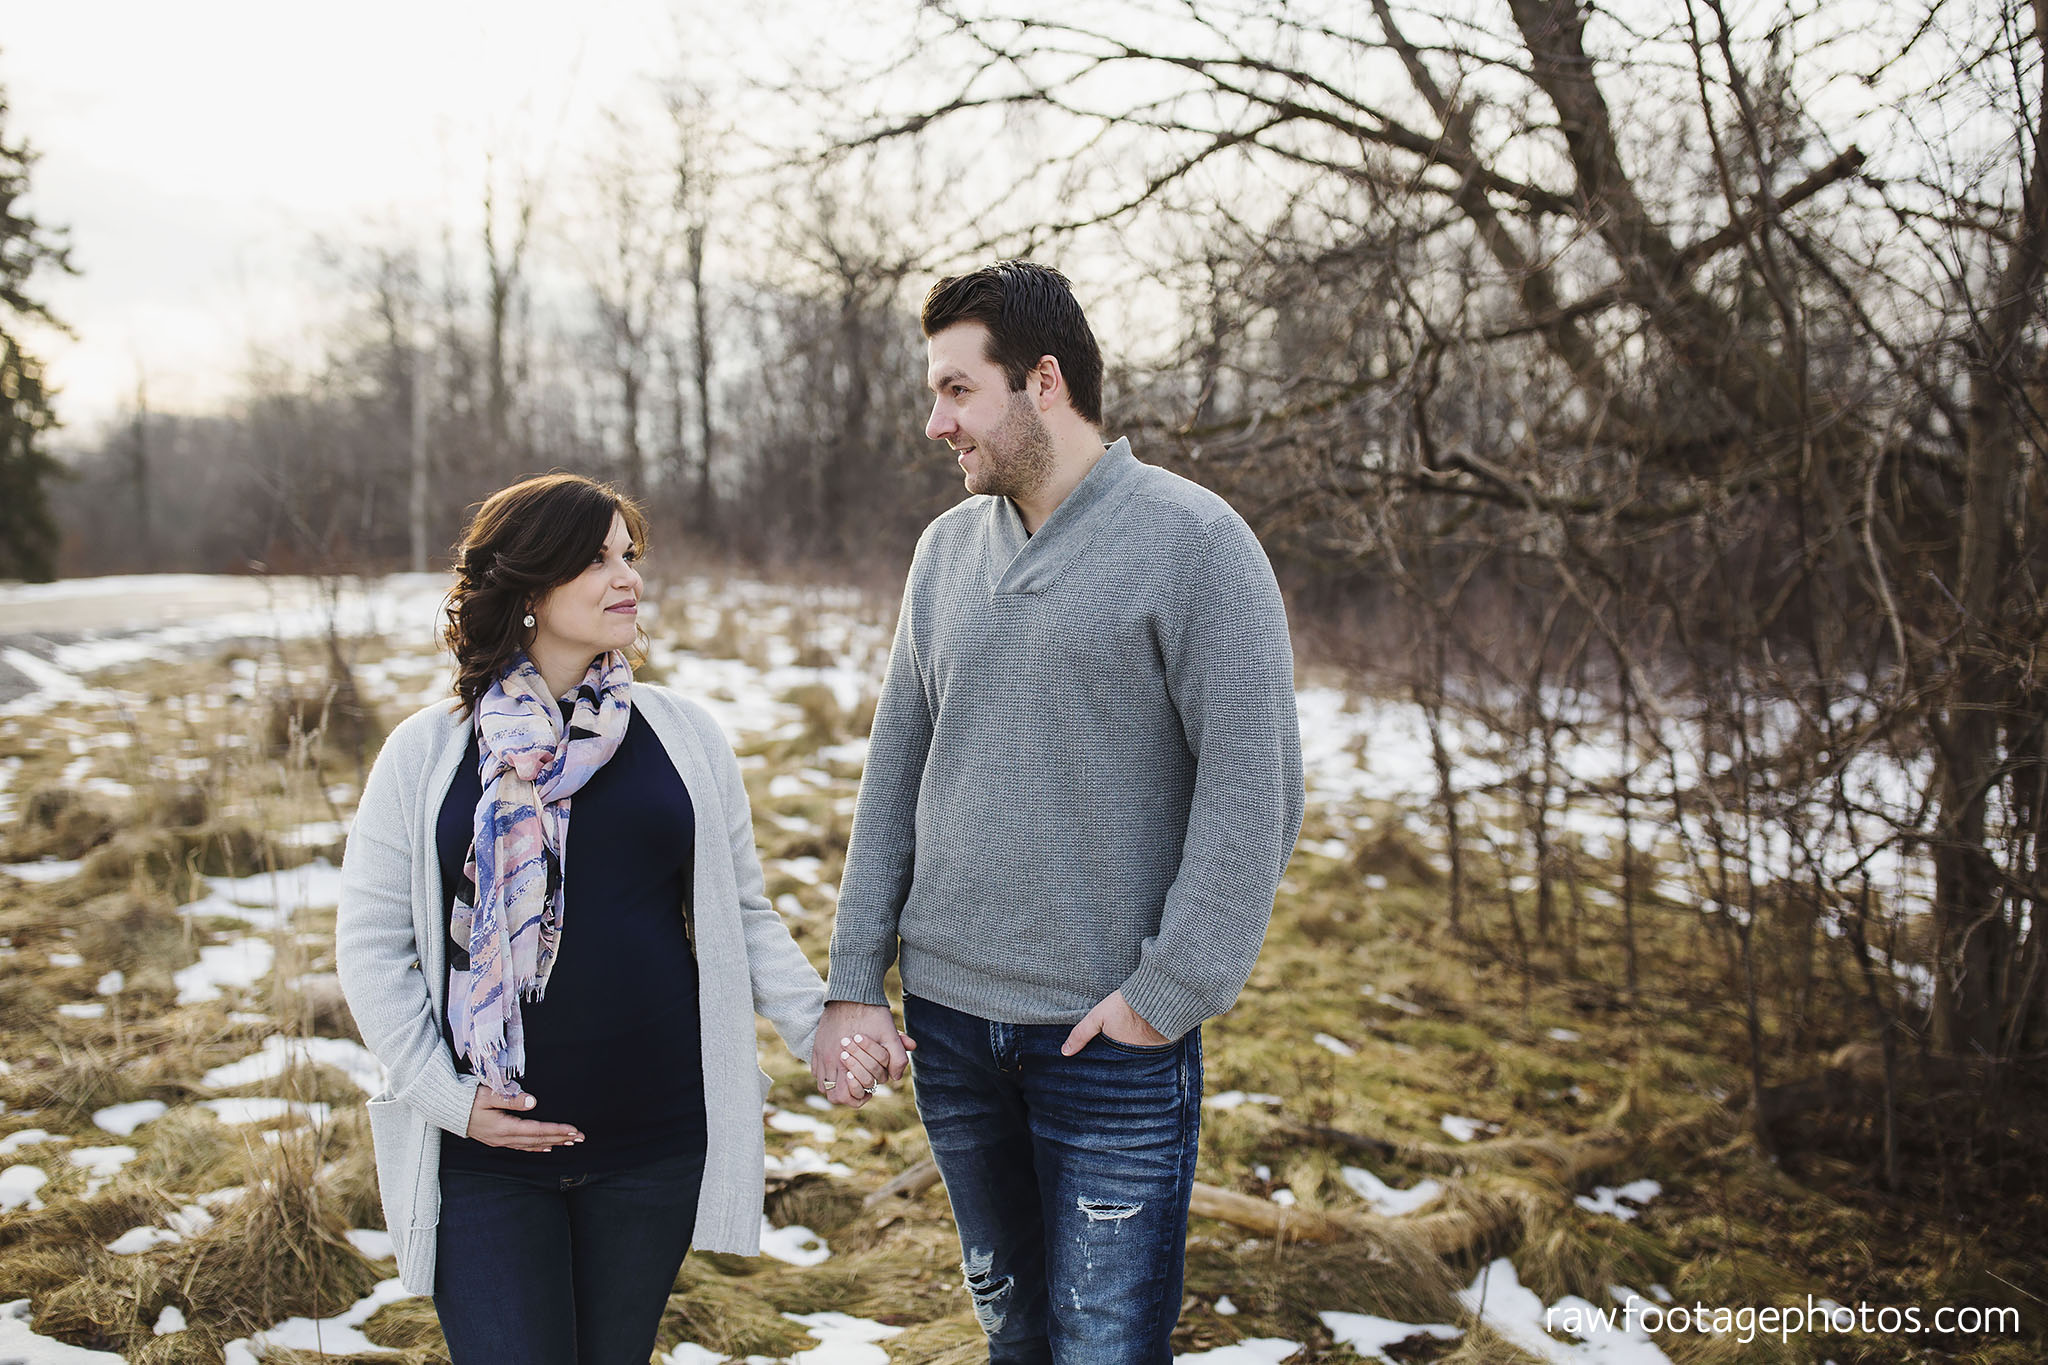 London_Ontario_Maternity_Photographer-Maternity_Session-Family_Photography-Winter_Photos-Raw_Footage_Photography027.jpg